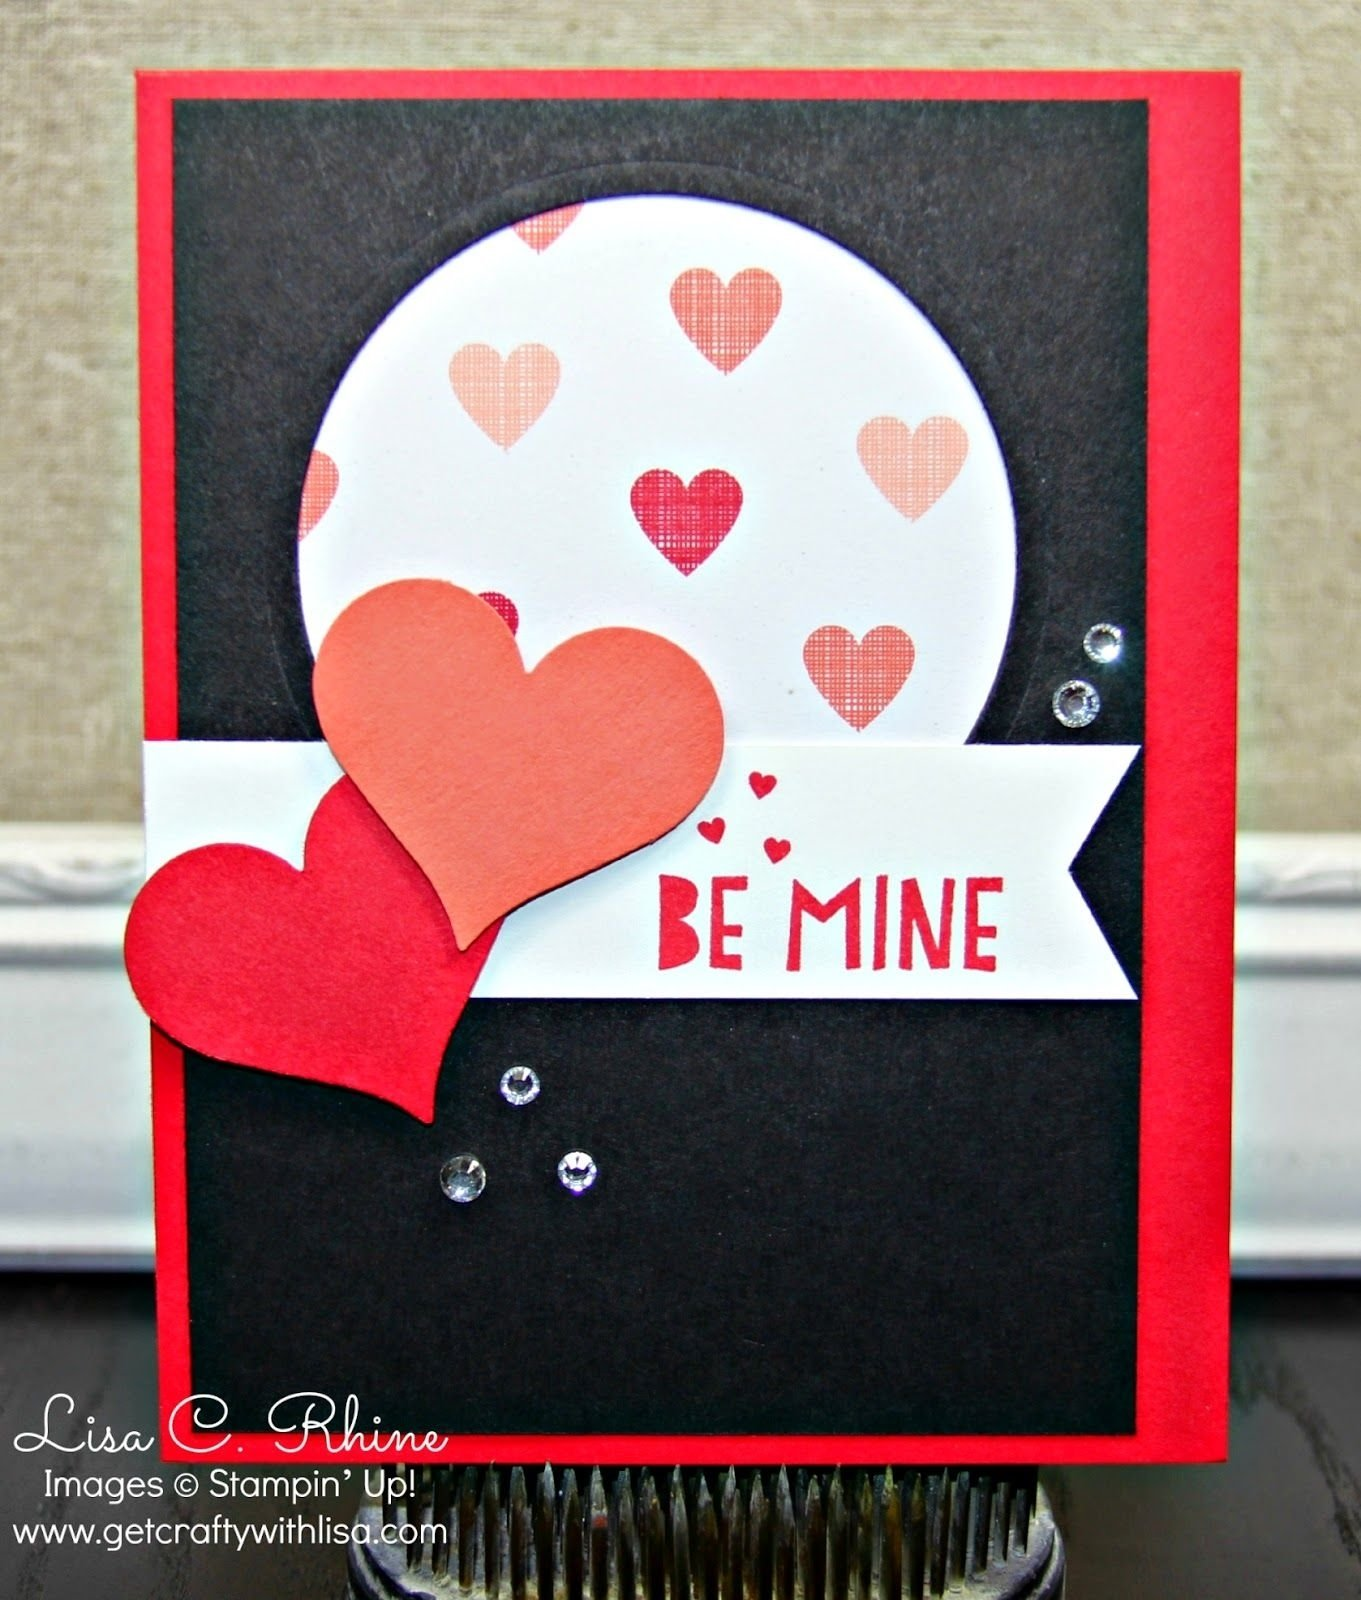 10 Fashionable Stampin Up Valentine Card Ideas stampin up handmade valentine card be mine black white 2020